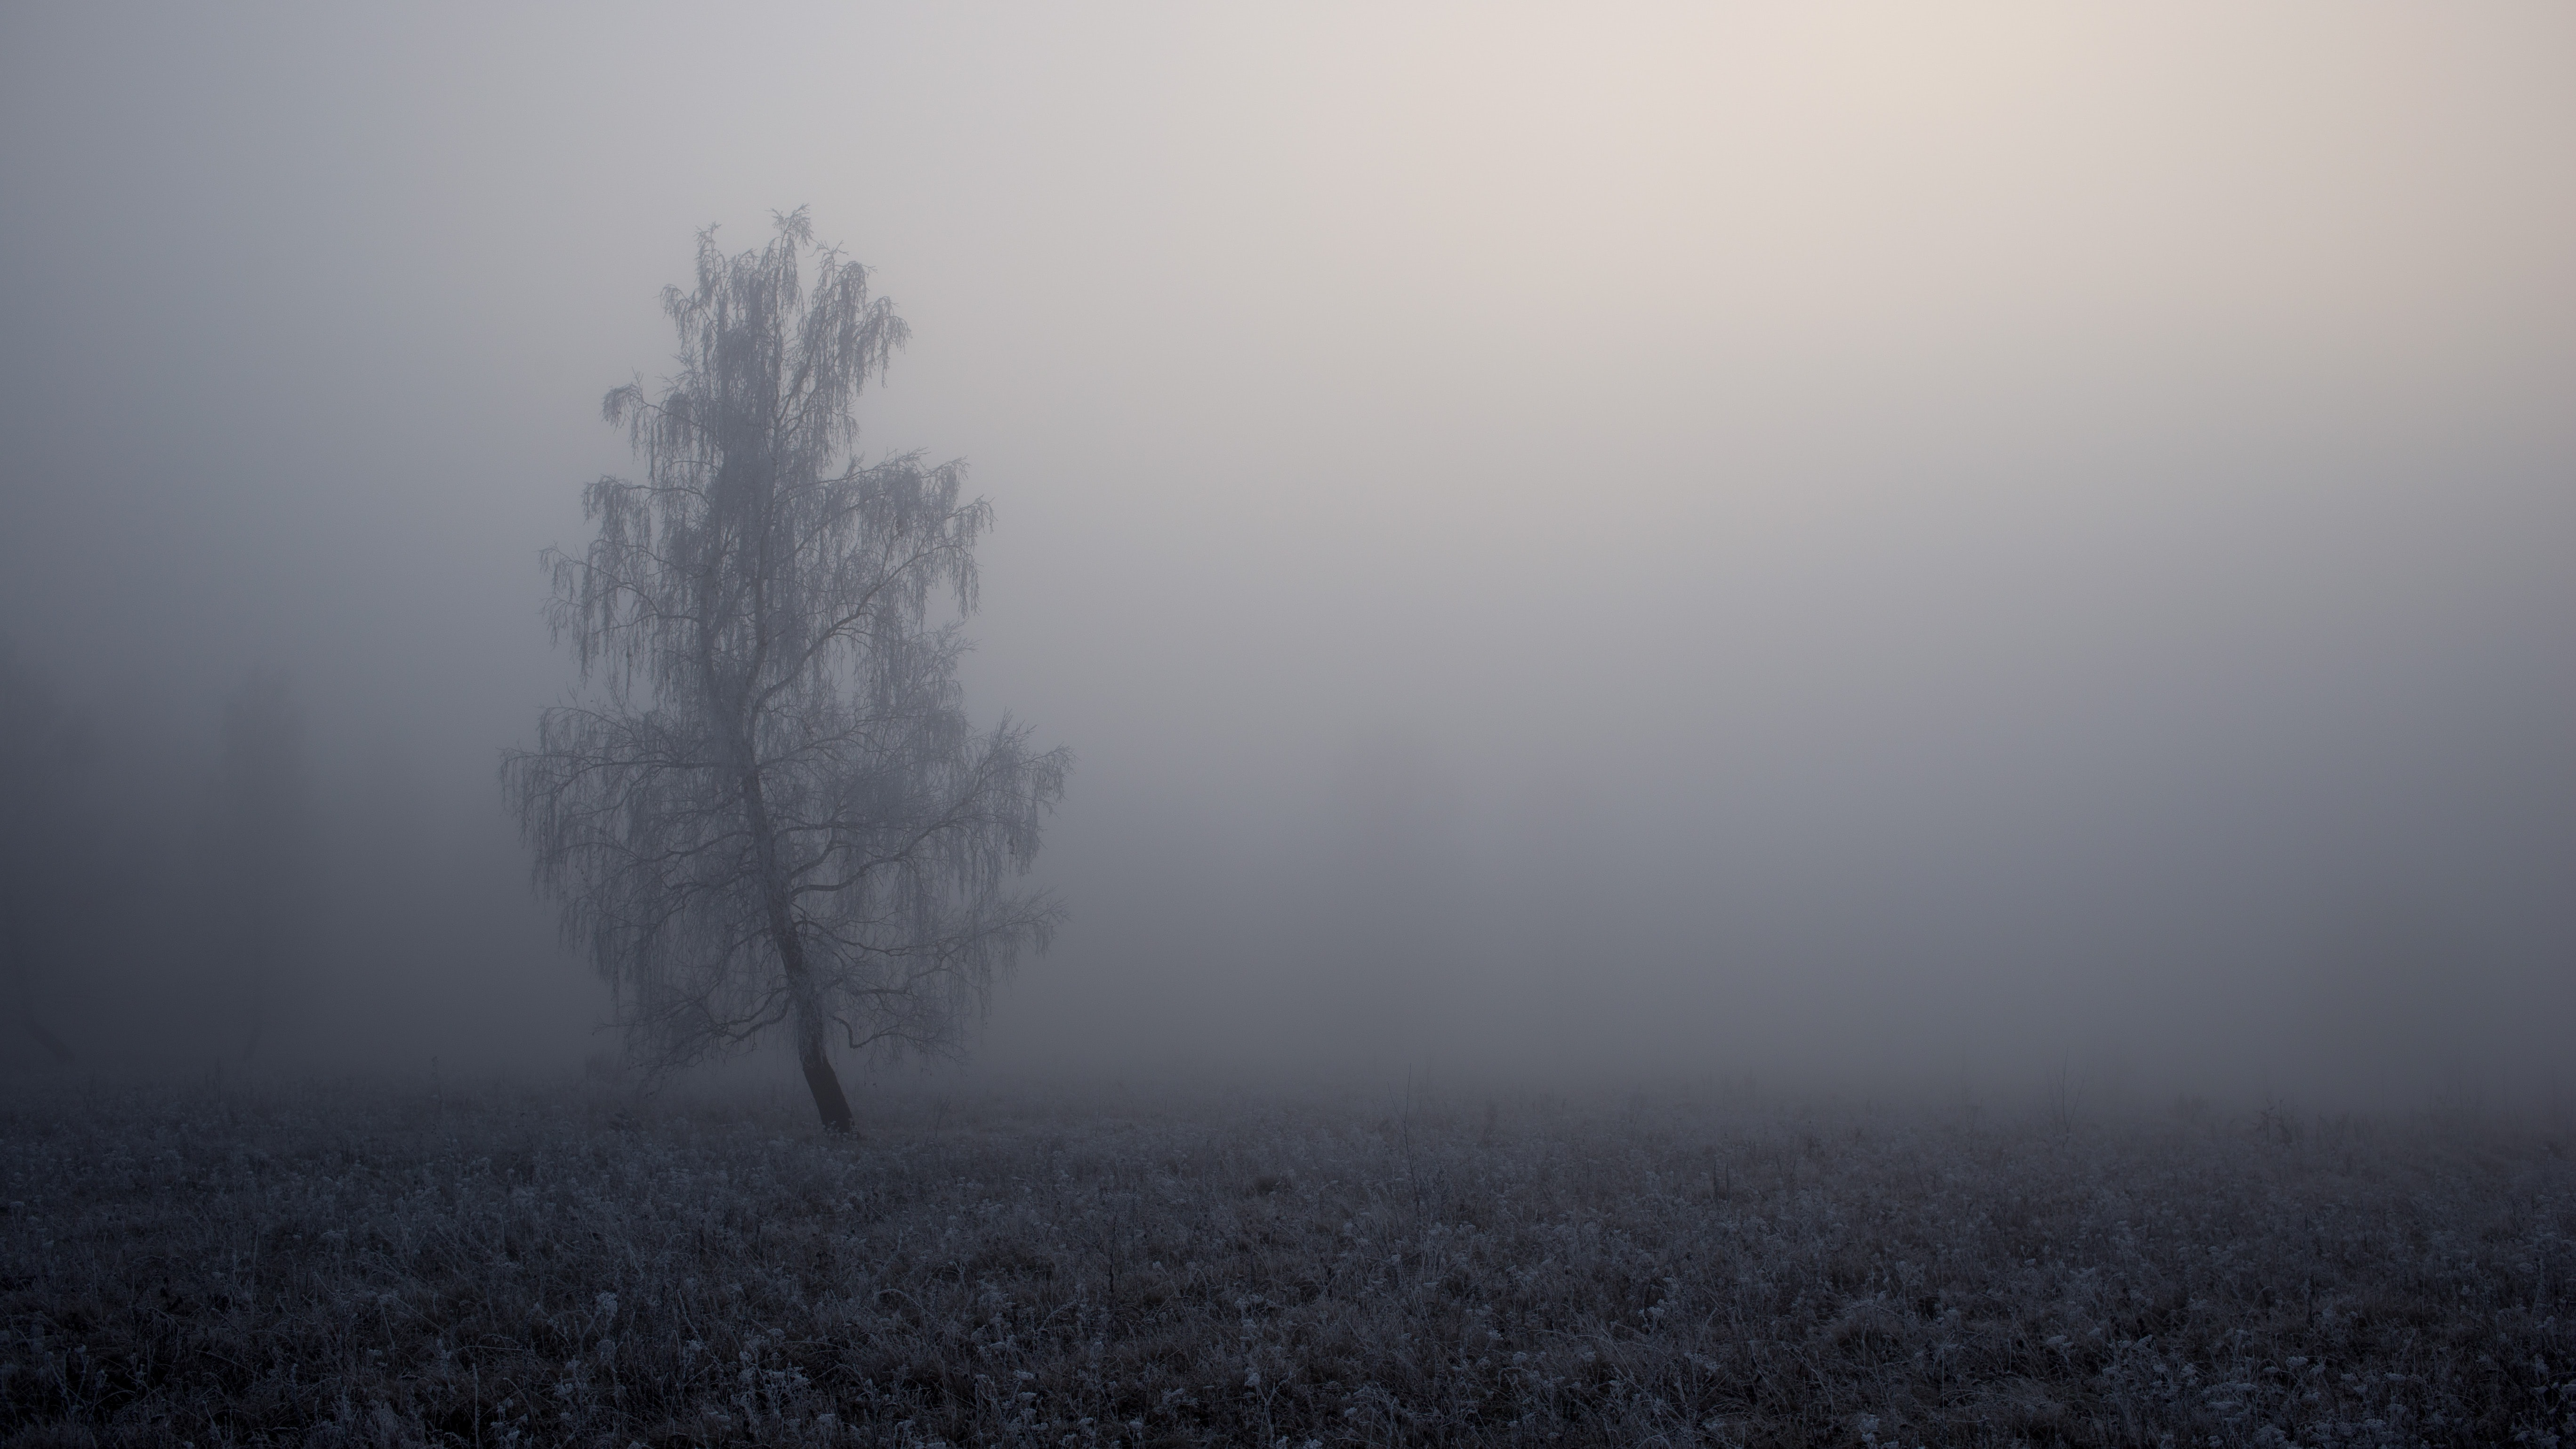 A dreary shot of a lone tree with frost on its branches